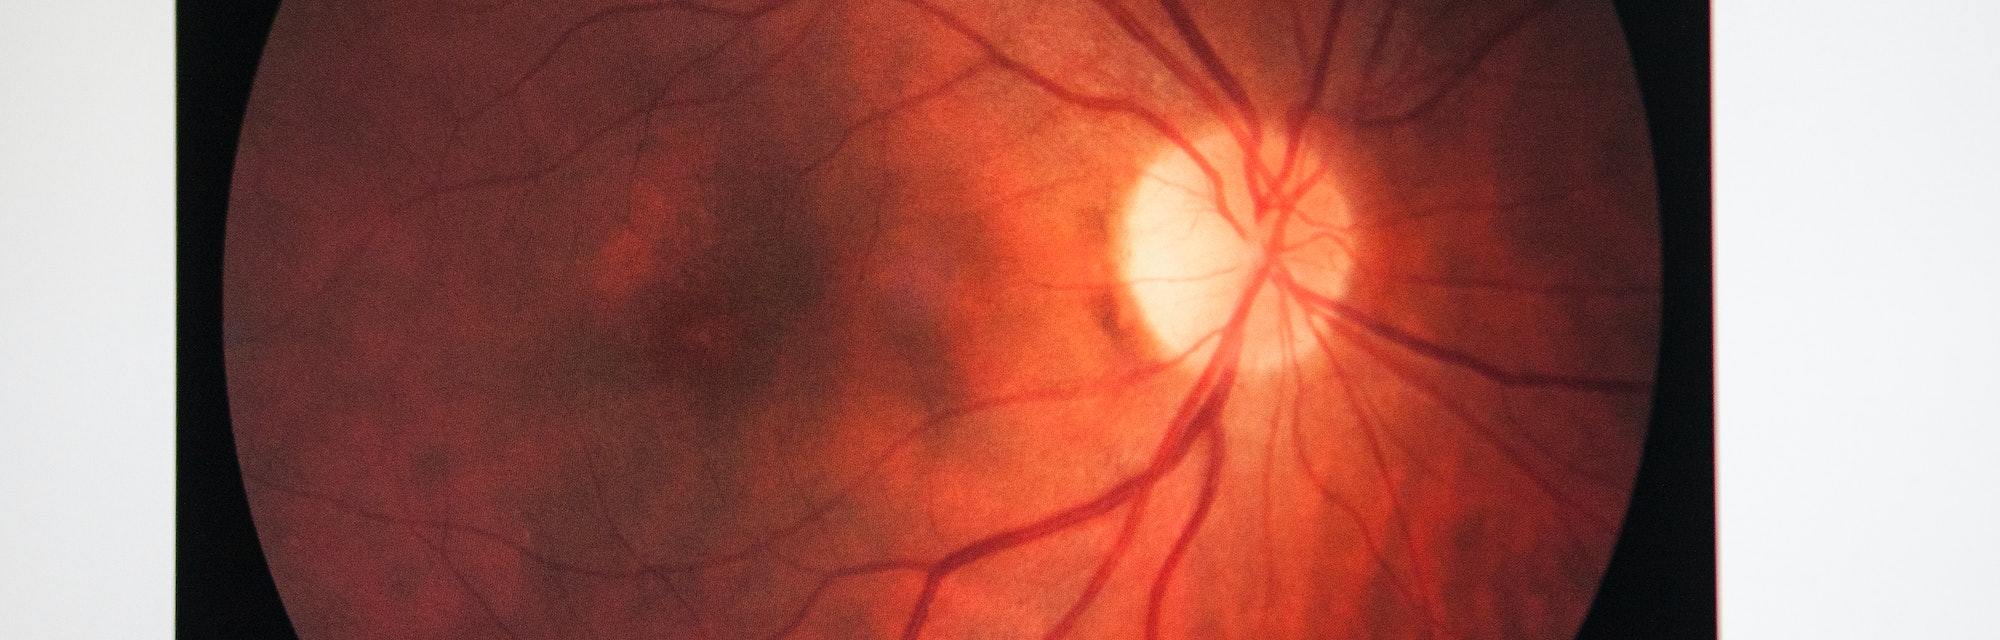 Fundus oculi of a patient suffering from retinal edema. (Photo by: BSIP/Universal Images Group via Getty Images)